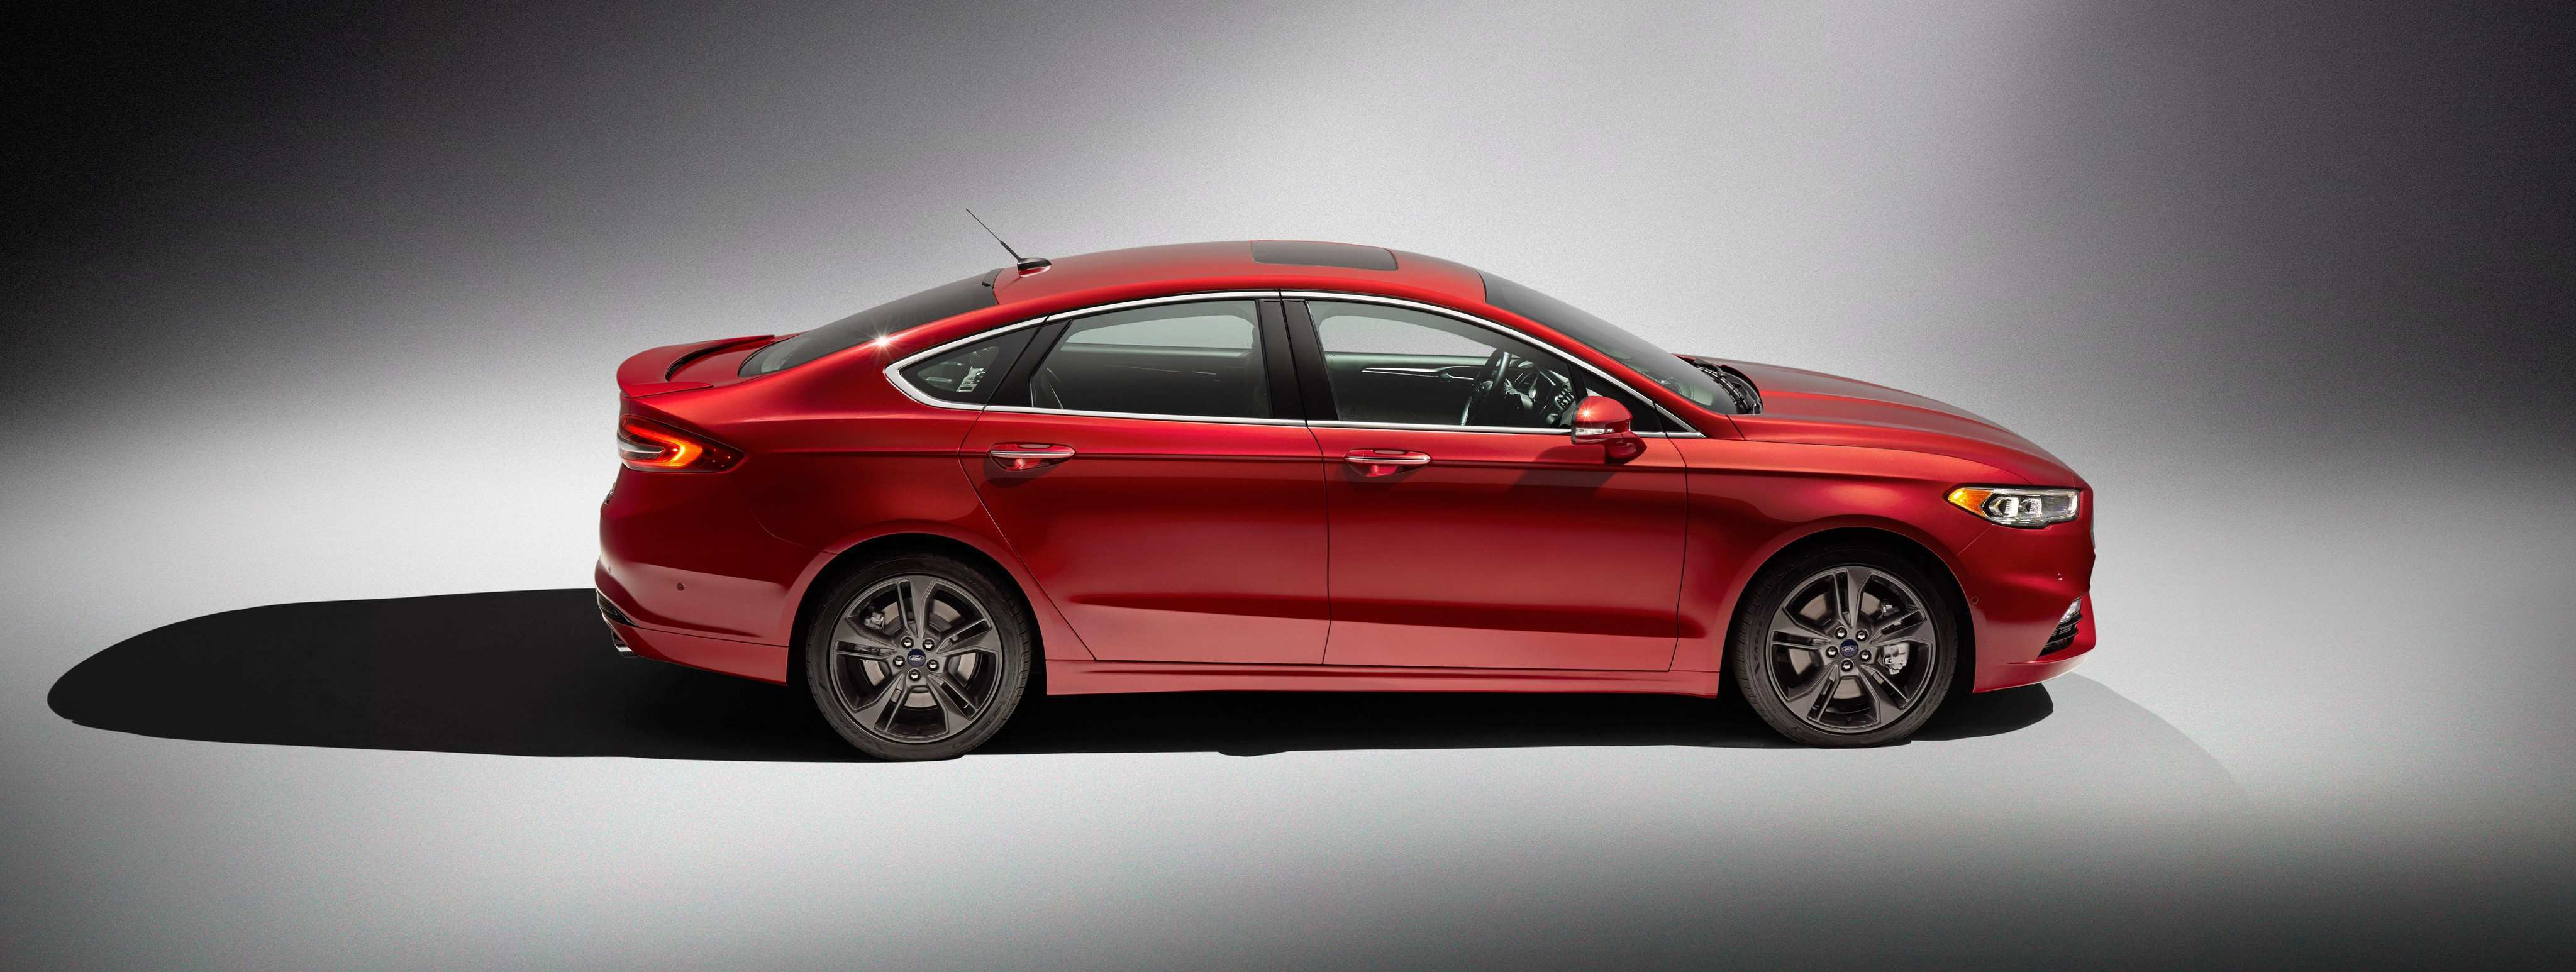 31 Best Review 2020 Ford Mondeo Configurations for 2020 Ford Mondeo